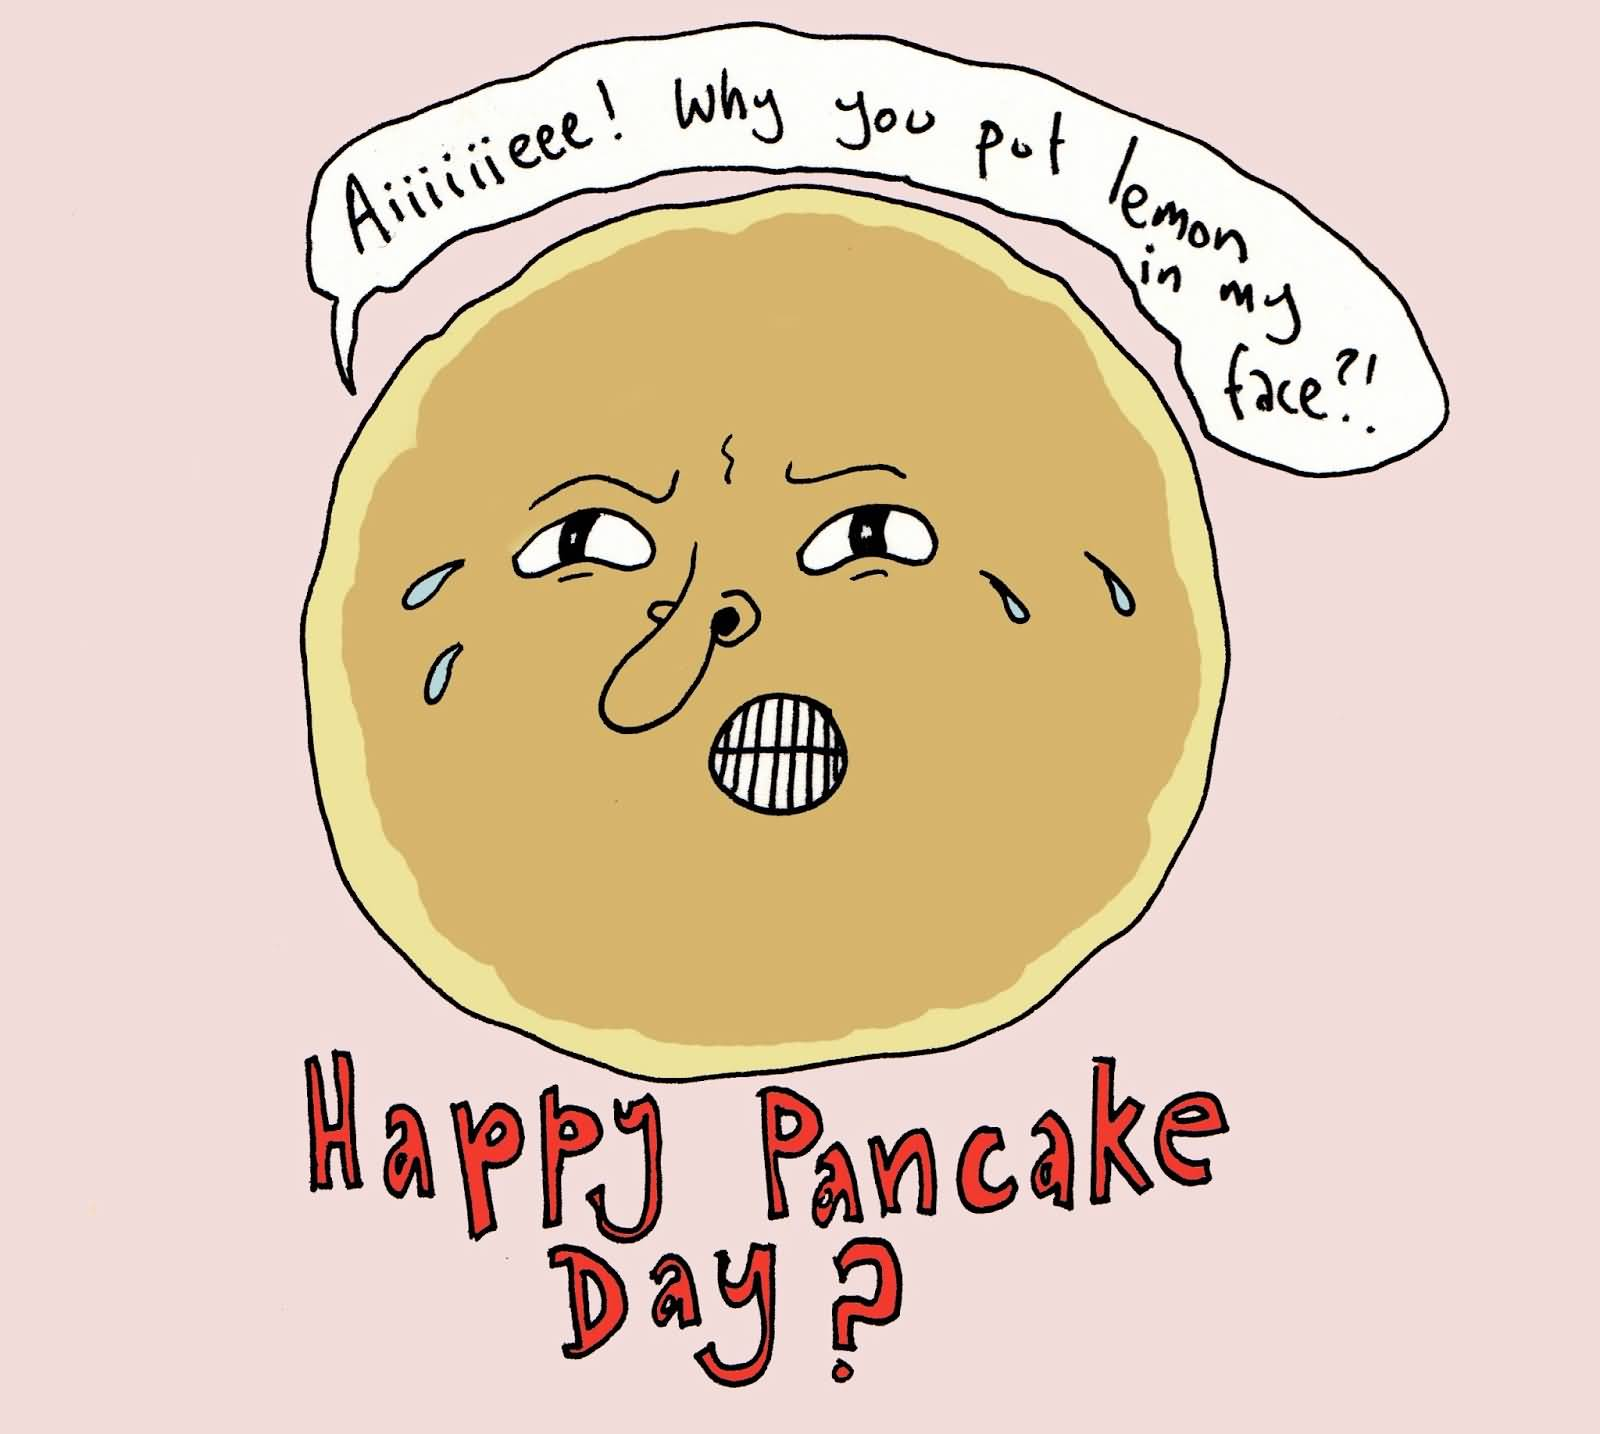 gratis-6 happy pancake dating